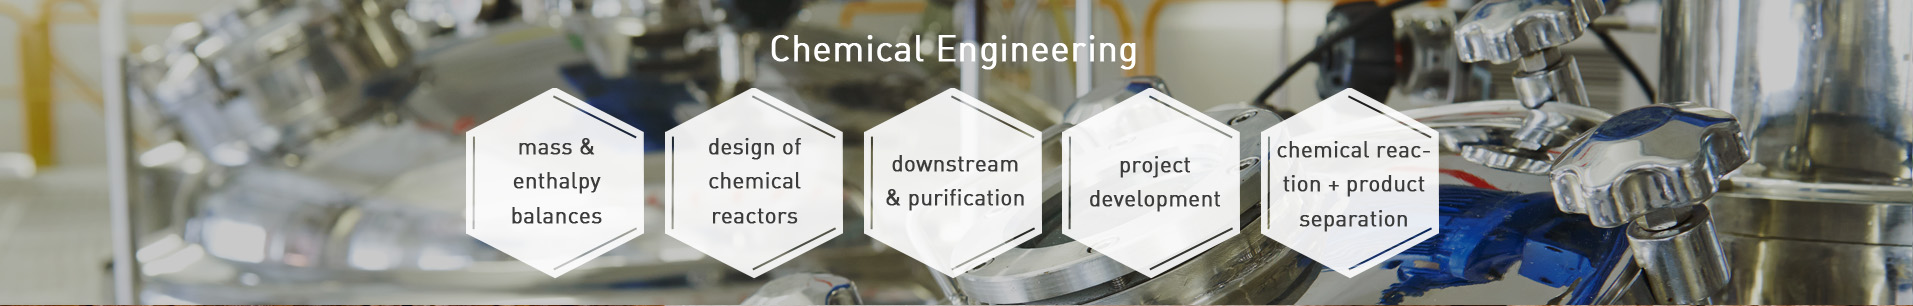 header_chemical_engineering